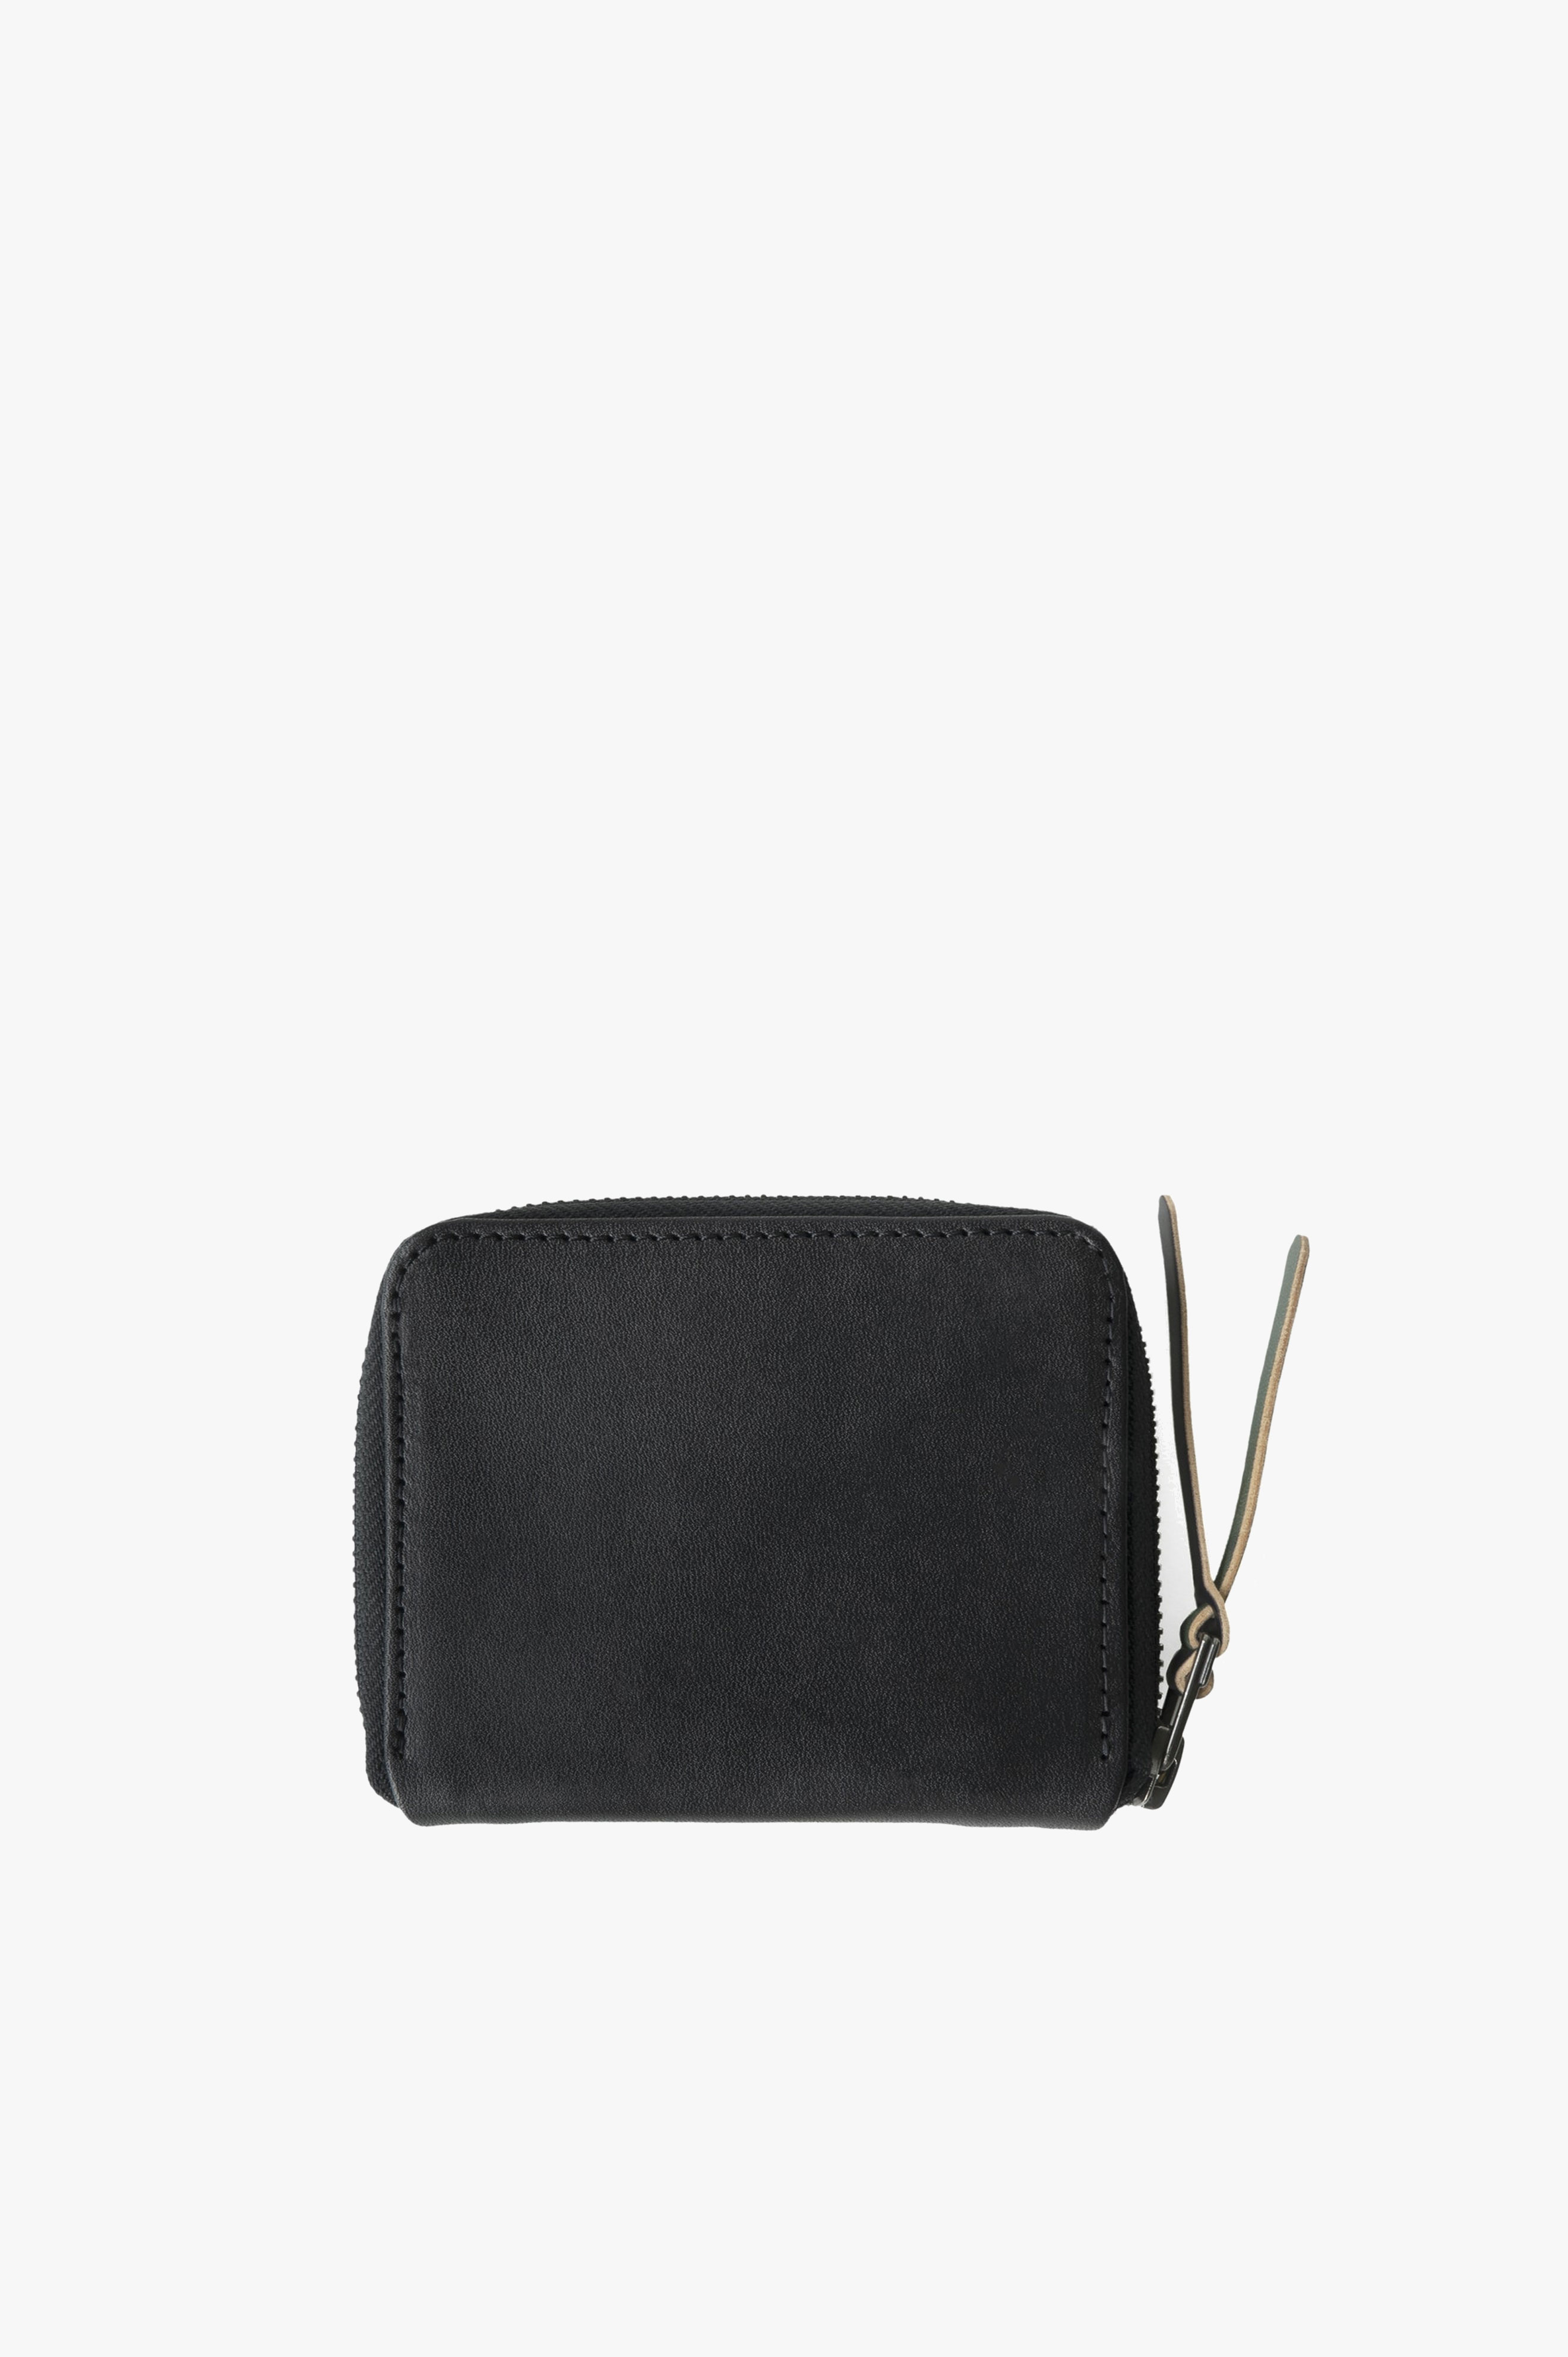 3/4 Zip Wallet Wickett and Craig® Vegetable Tanned Black Leather